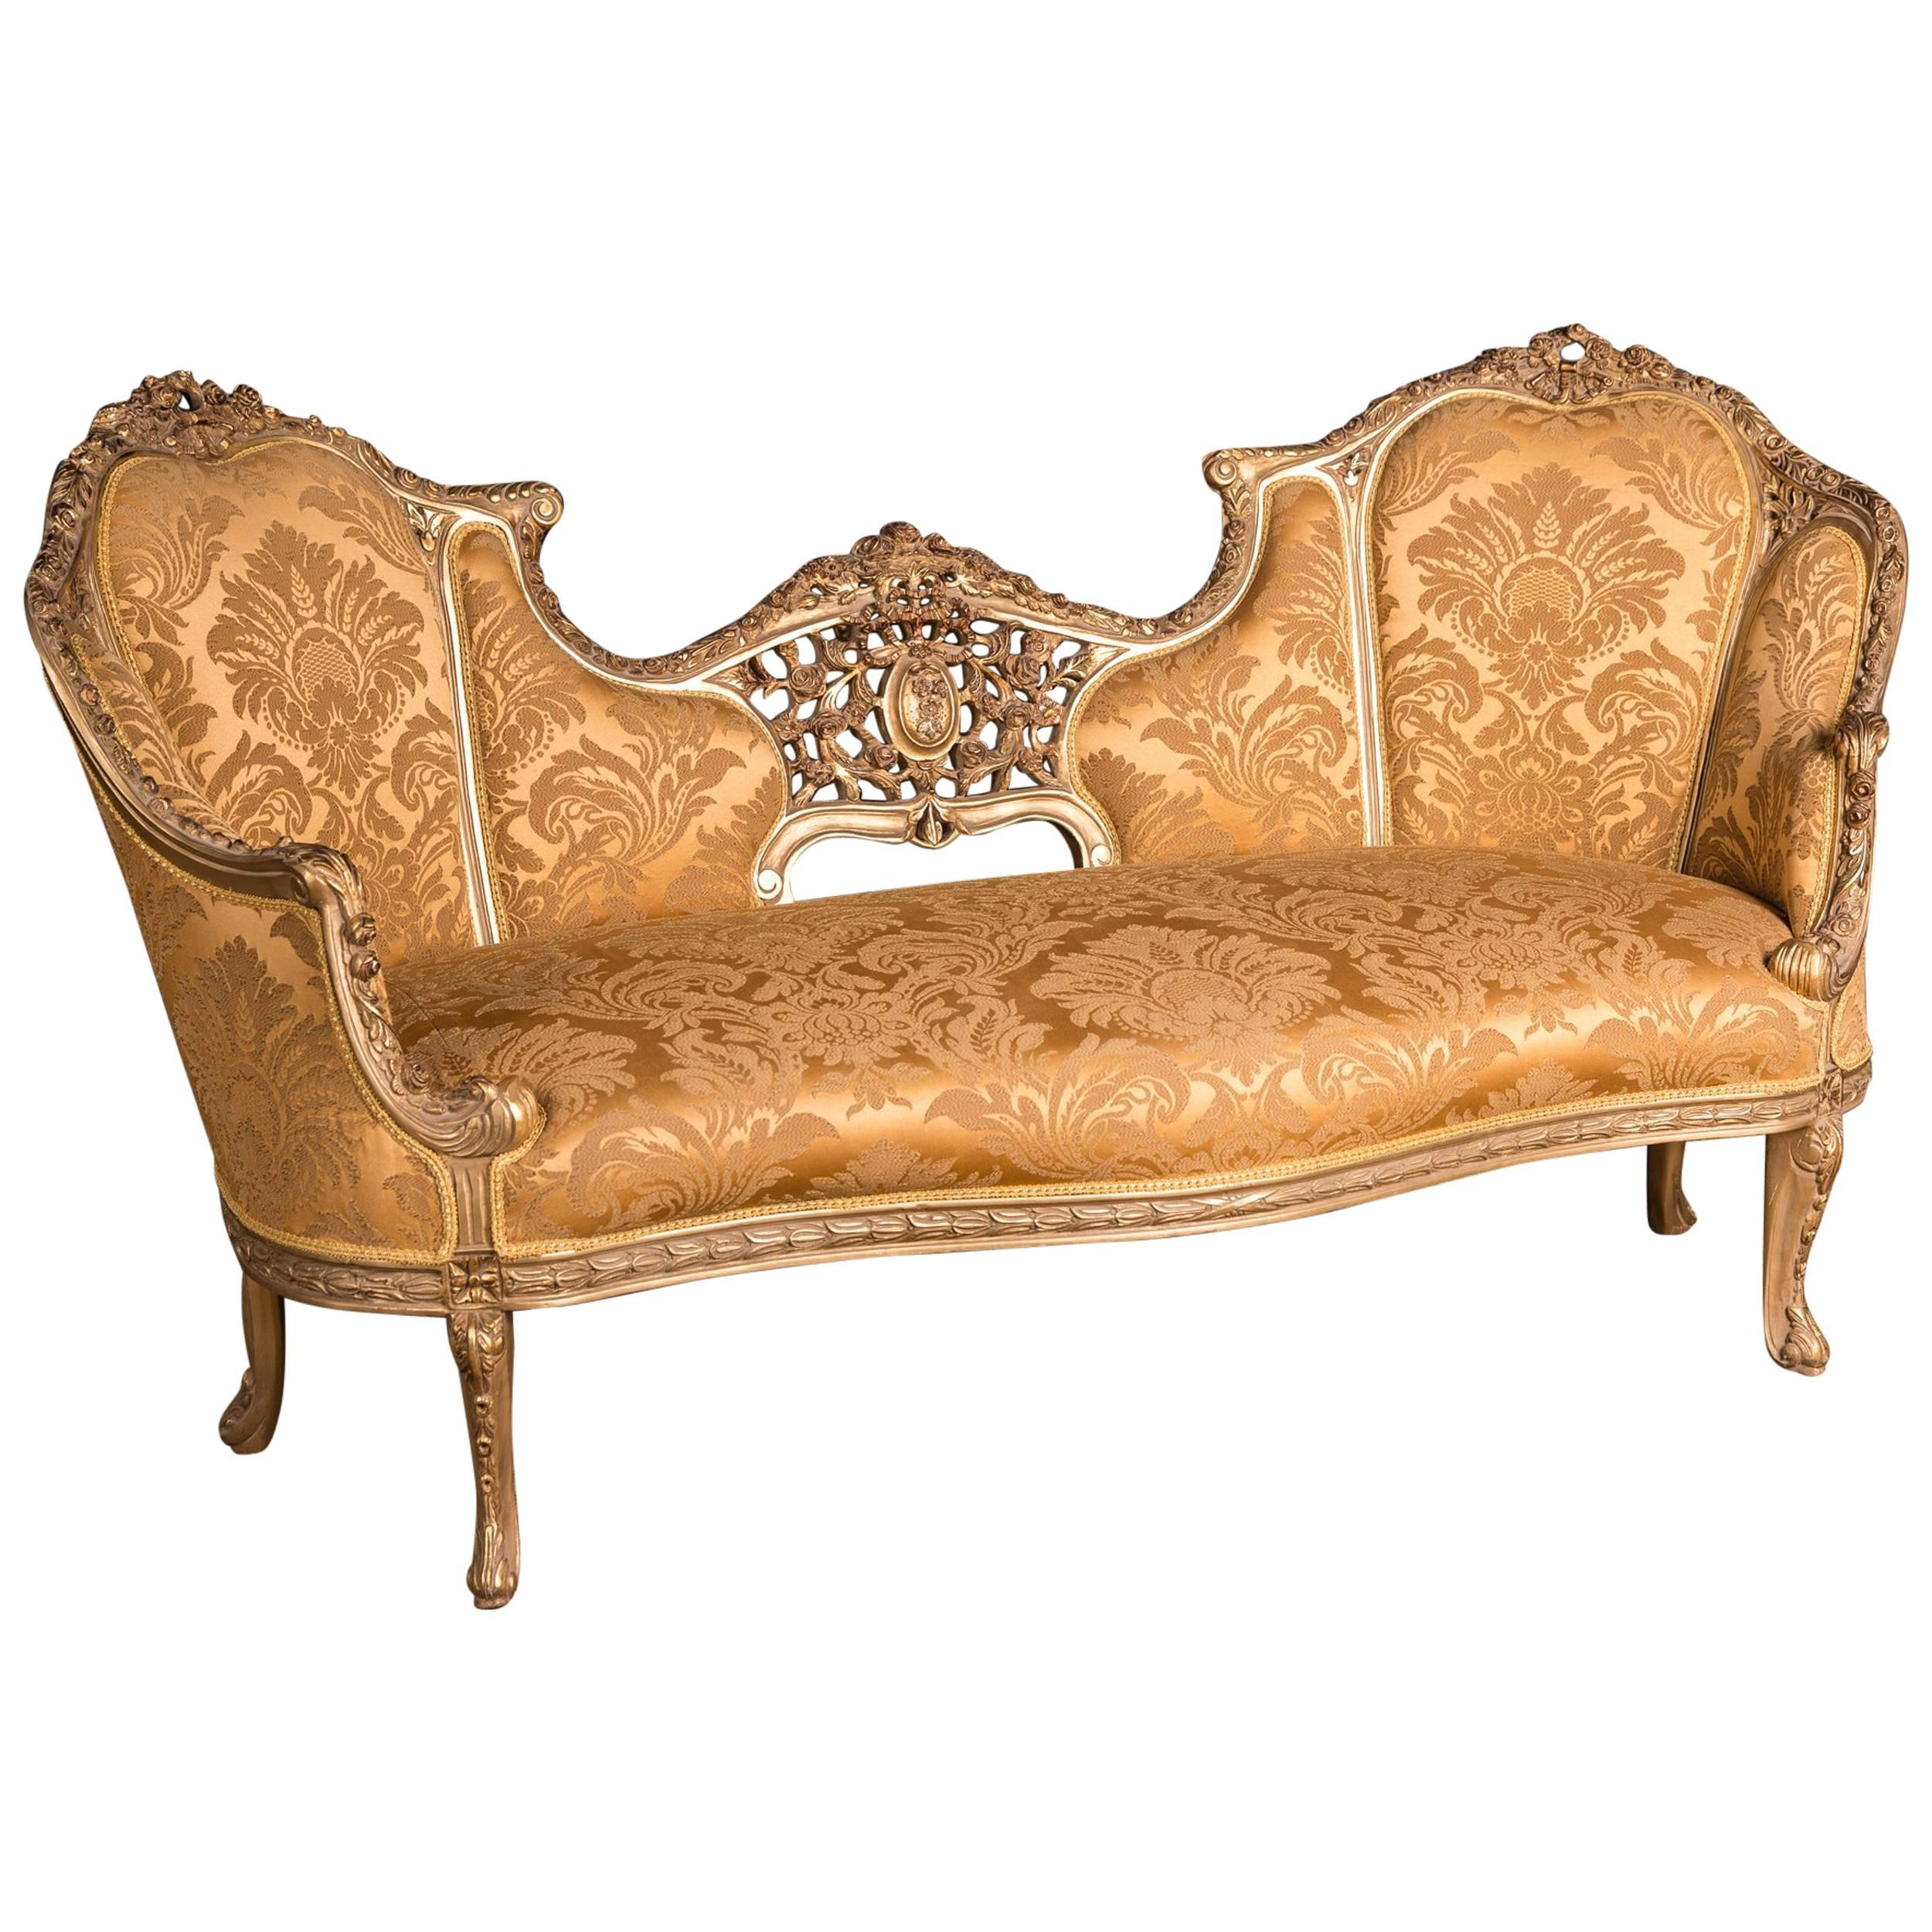 Canape Sofa Large Elegant French Sofa Canape In Louis Quinze Style